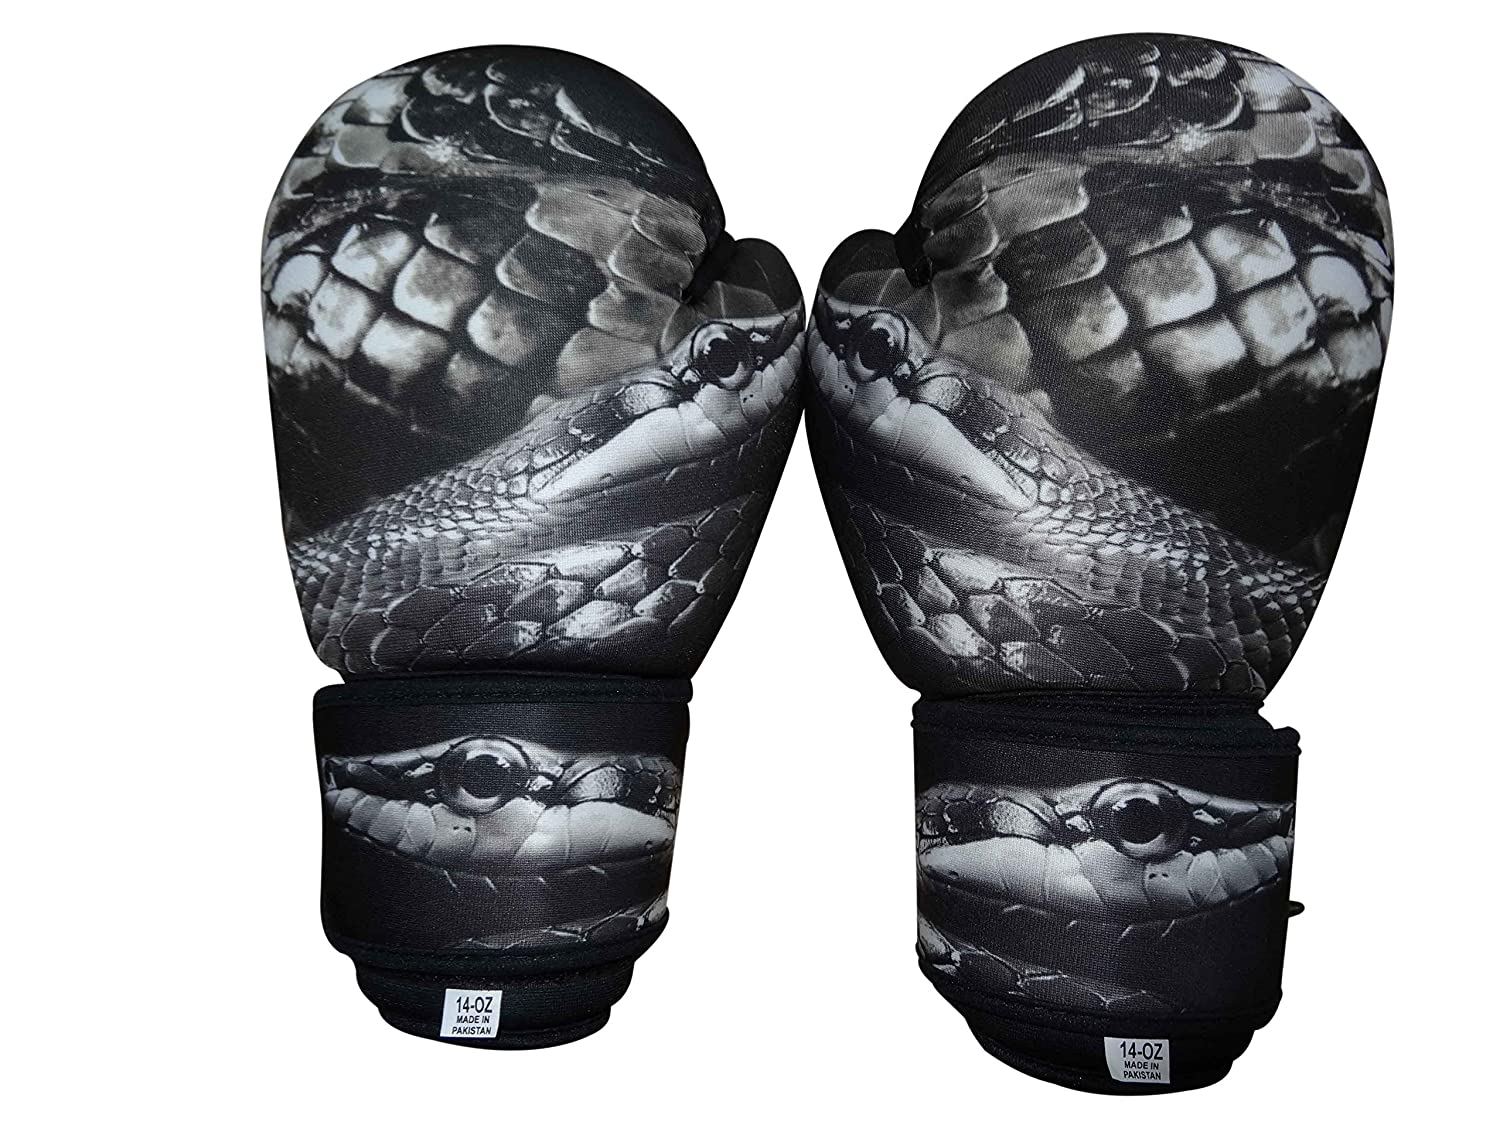 Woldorf USA WashableグレーBoxing Bag Gloves with Imprint Snake 10oz B00CYRM3FC